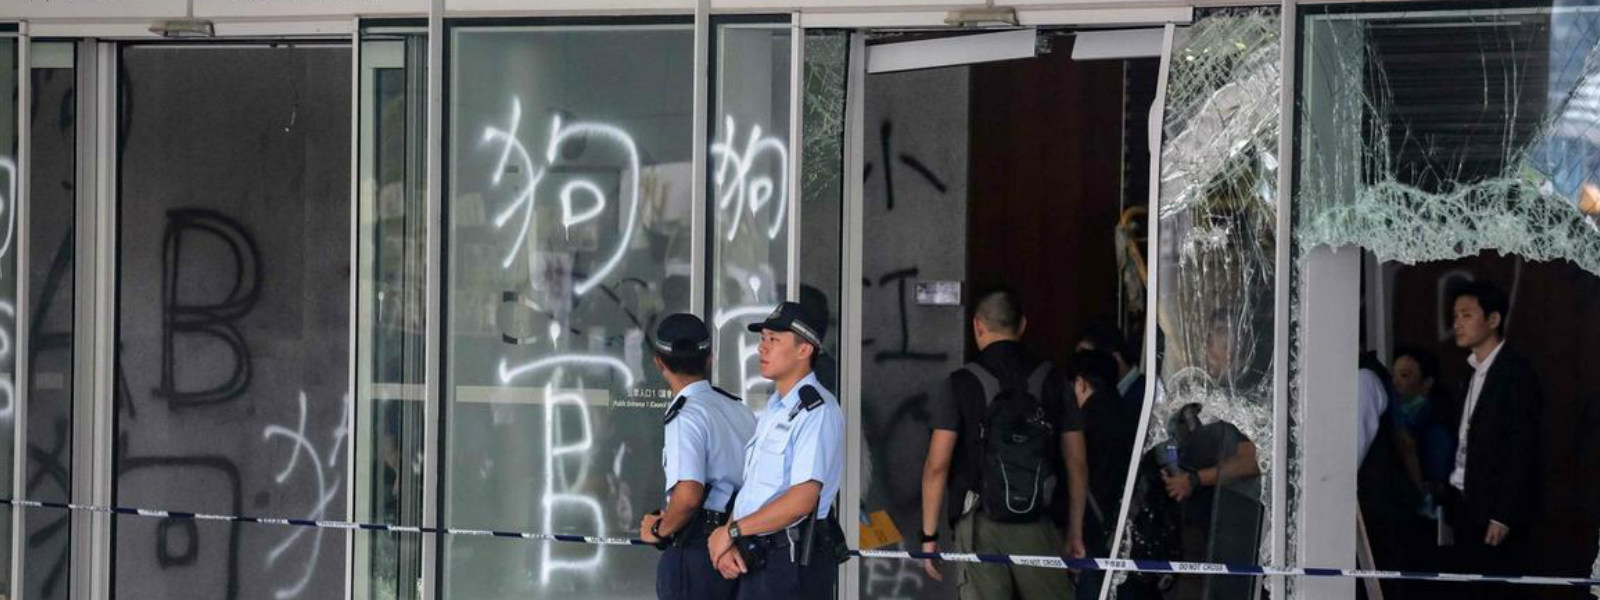 Hong Kong protests: China says protesters 'trample rule of law'